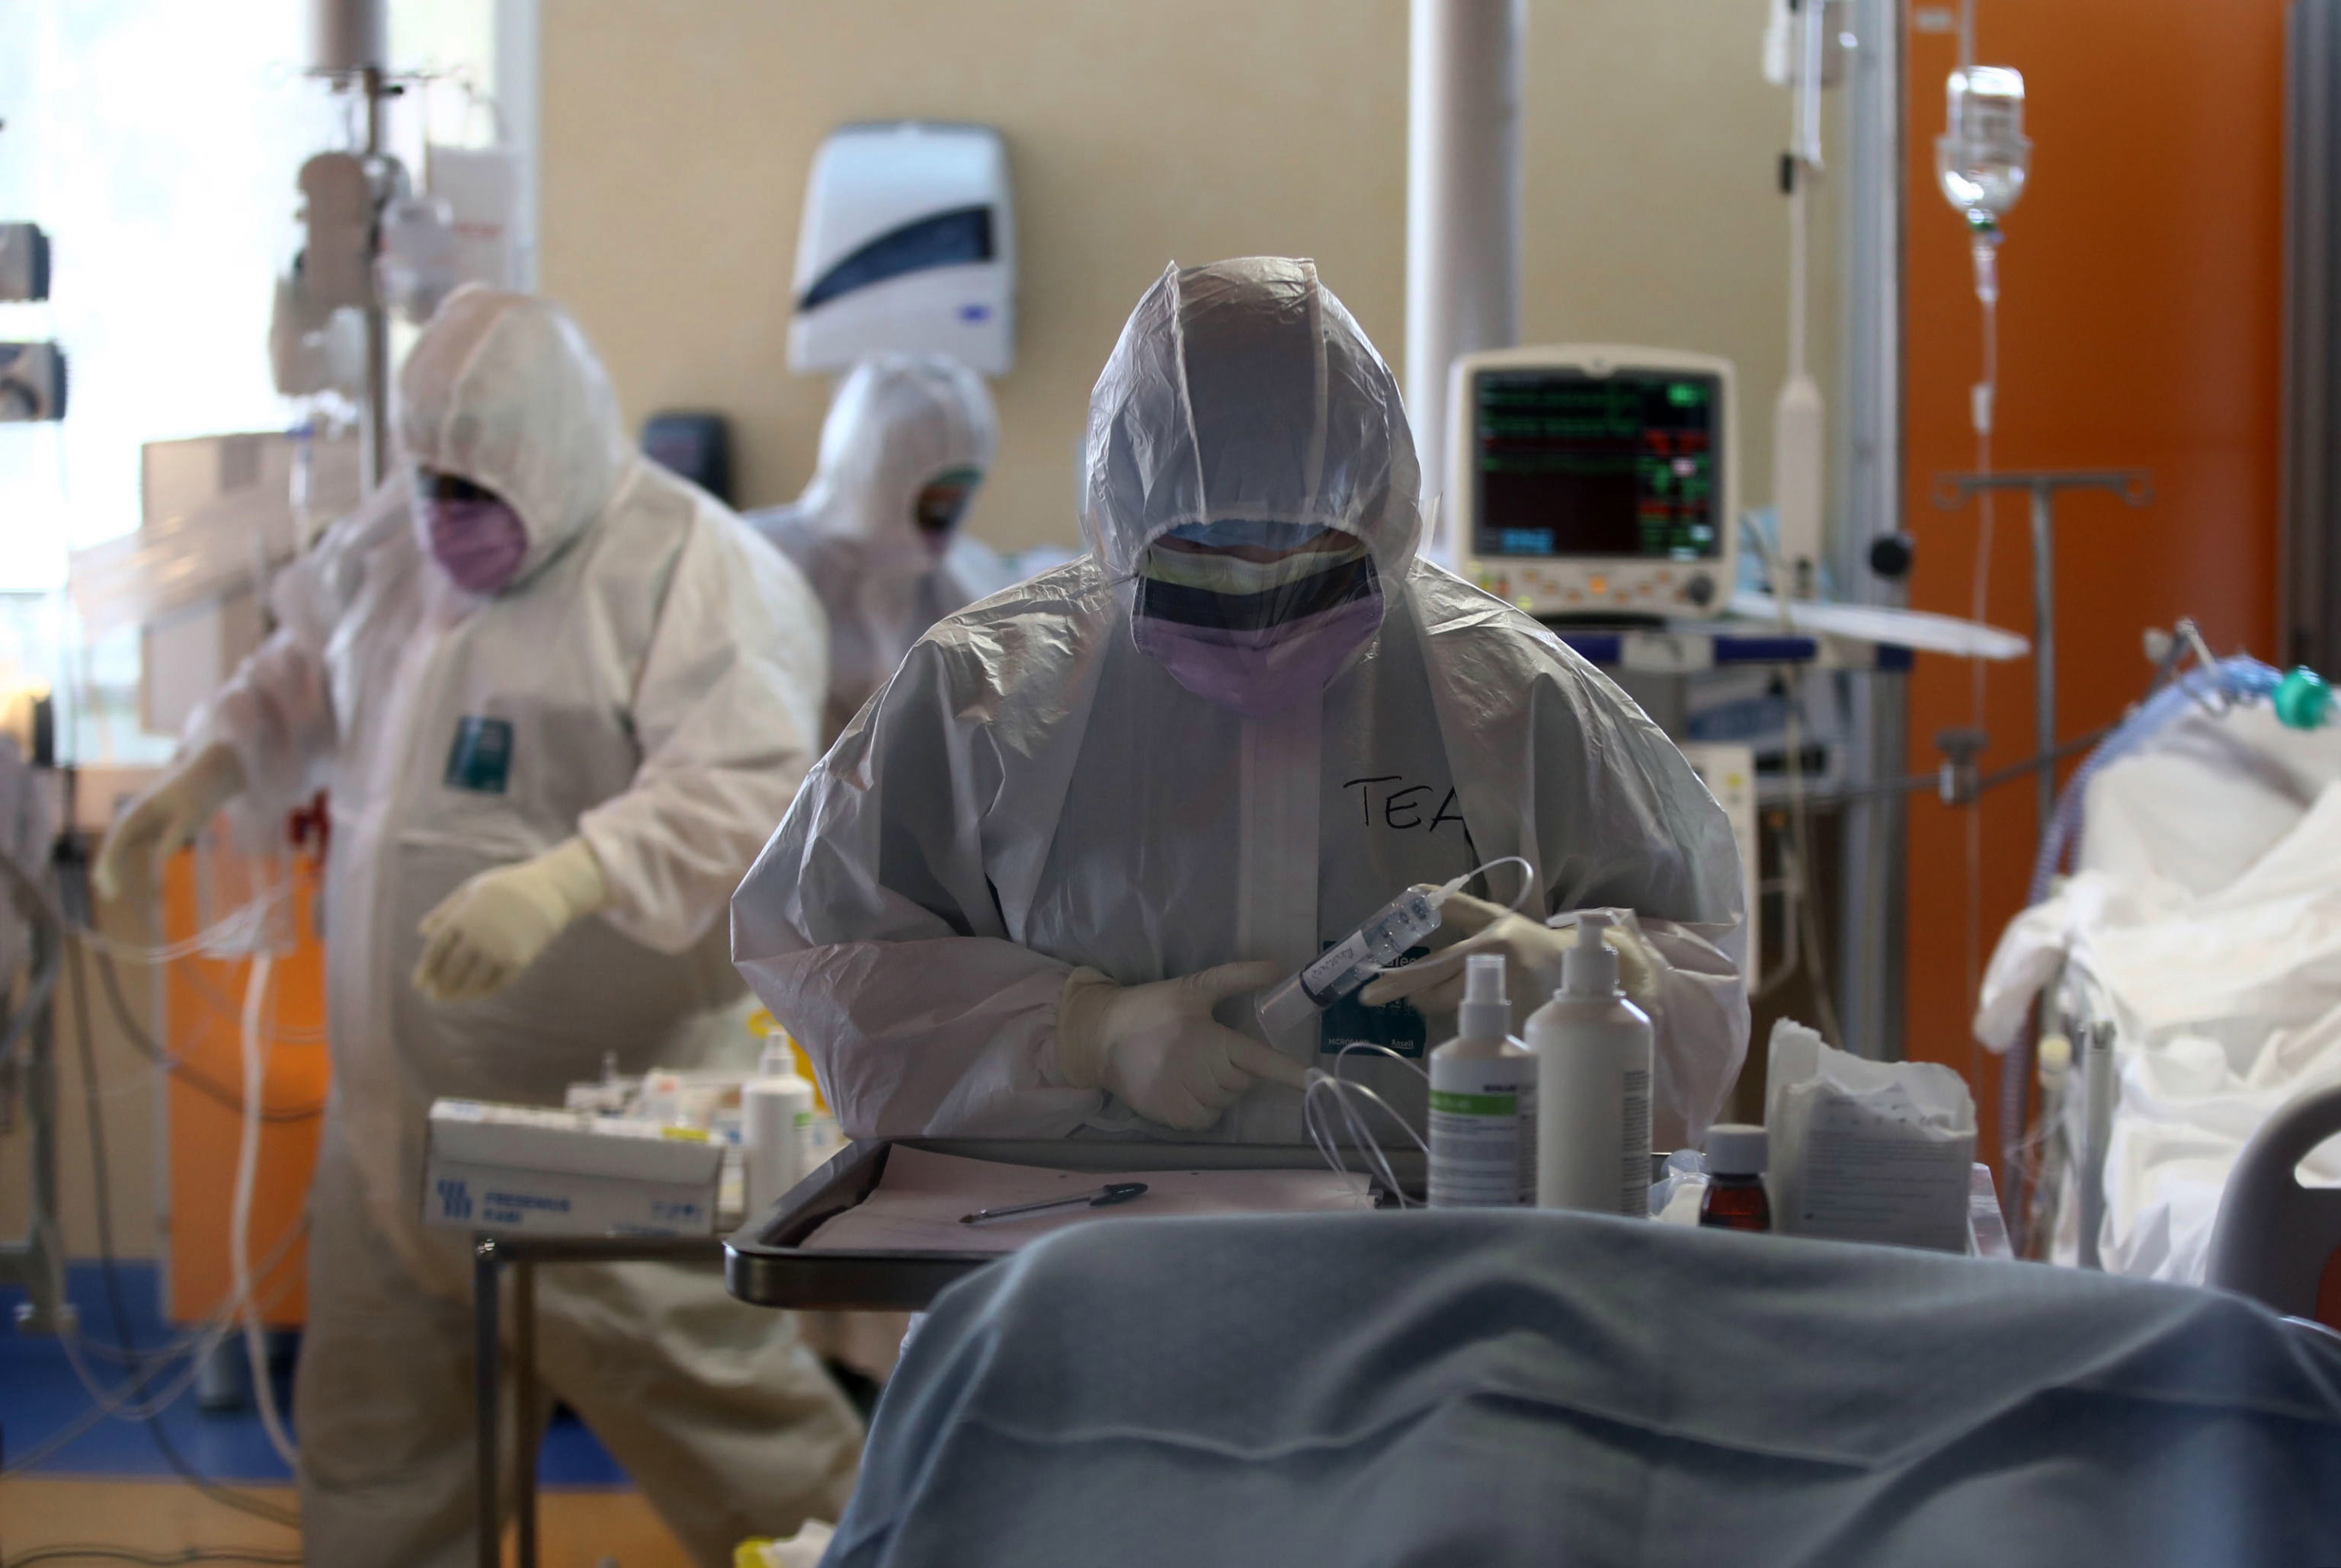 Italy has more coronavirus cases than anywhere else on Earth